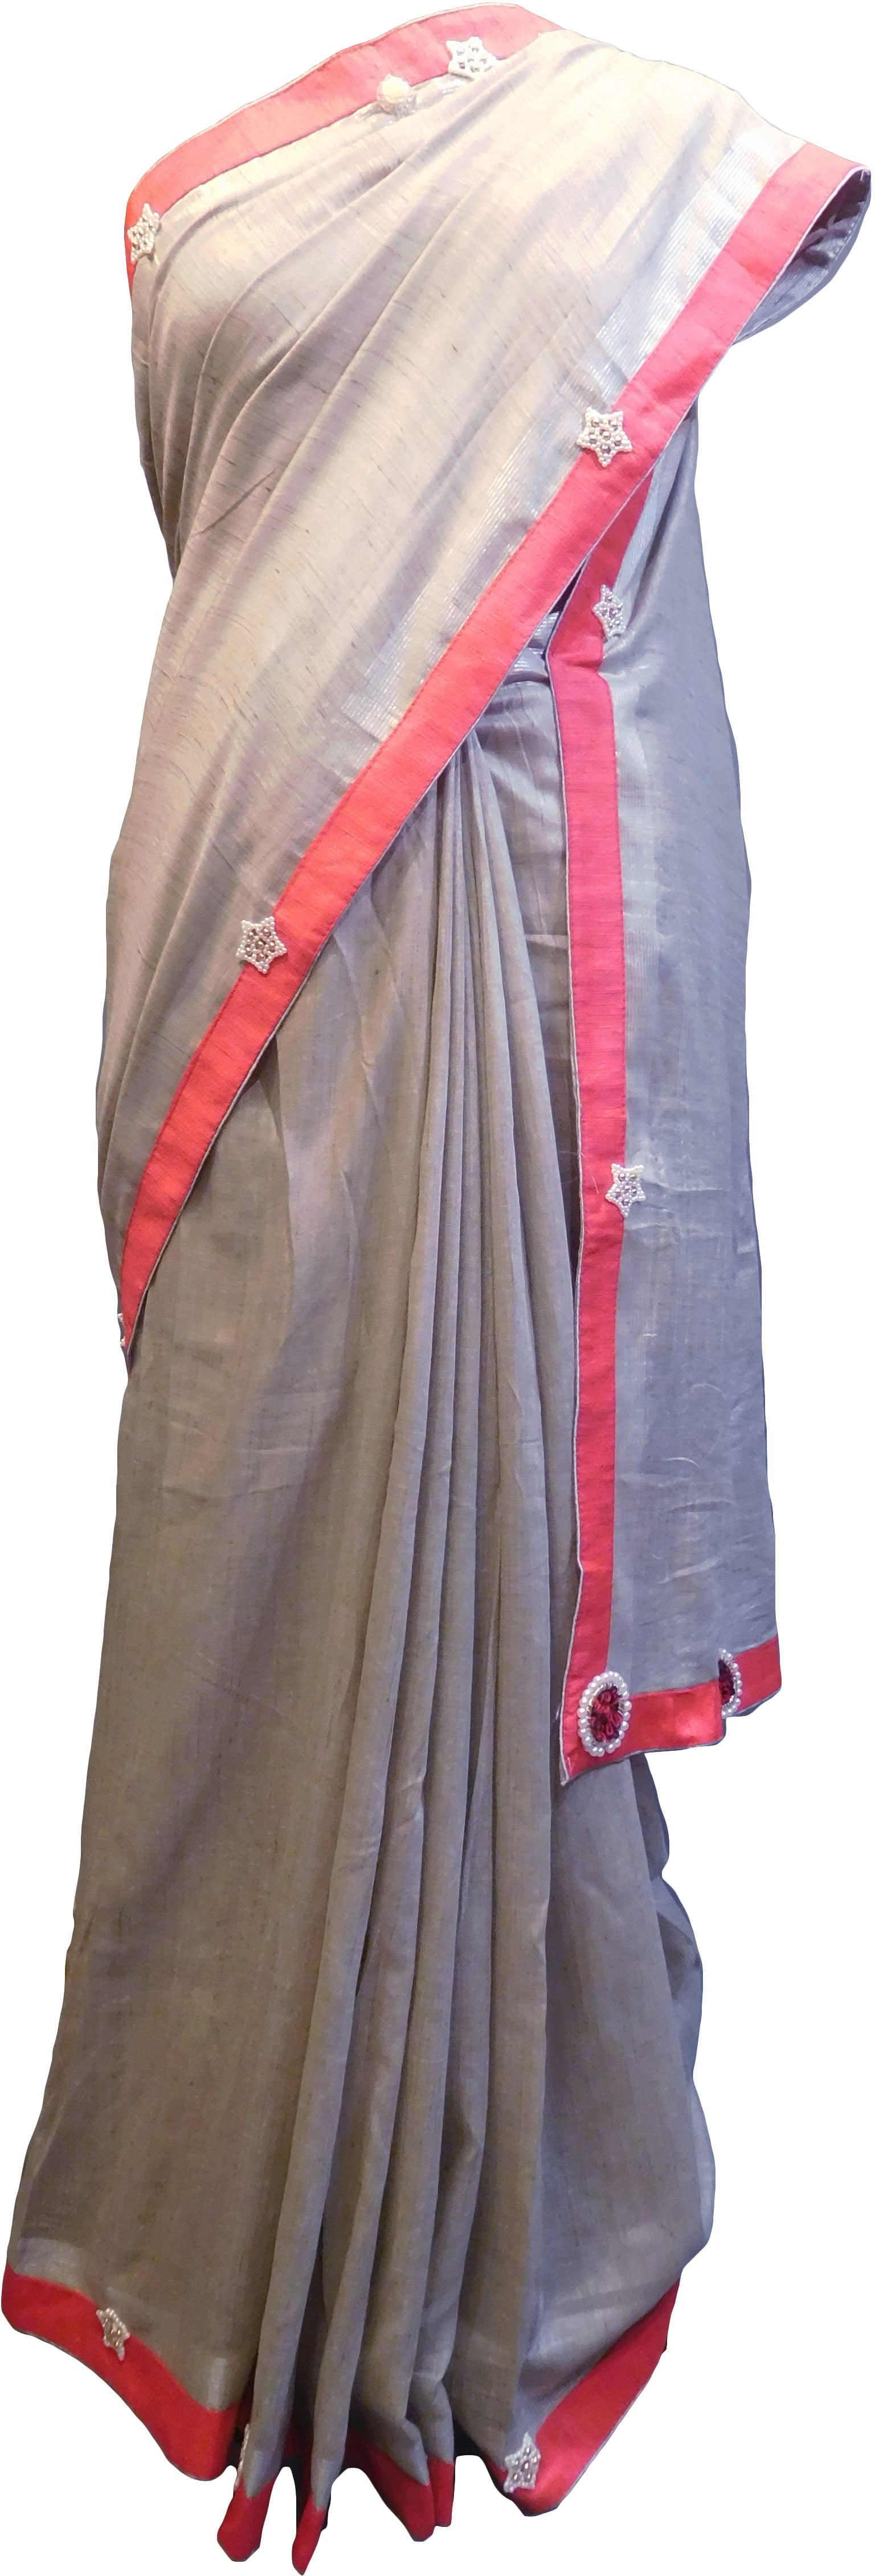 SMSAREE Grey Designer Wedding Partywear Handloom Linen Thread & Zari Hand Embroidery Work Bridal Saree Sari With Blouse Piece F123